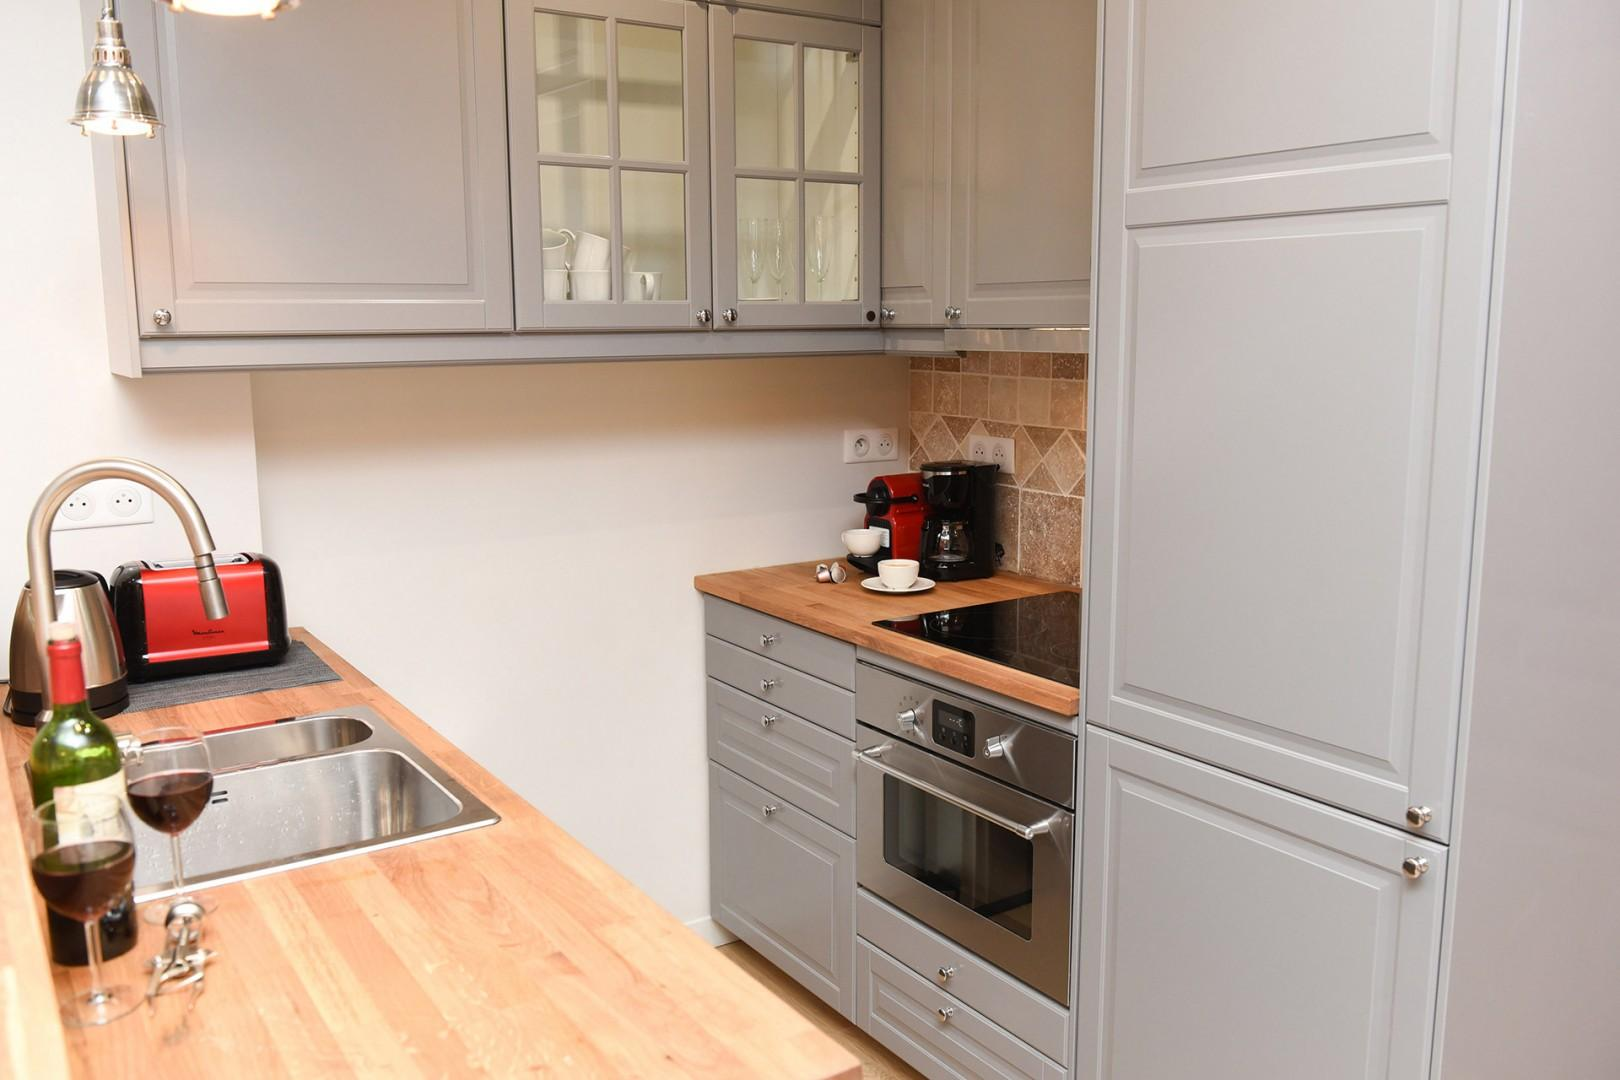 The fully equipped kitchen is great for easy meal preparation.